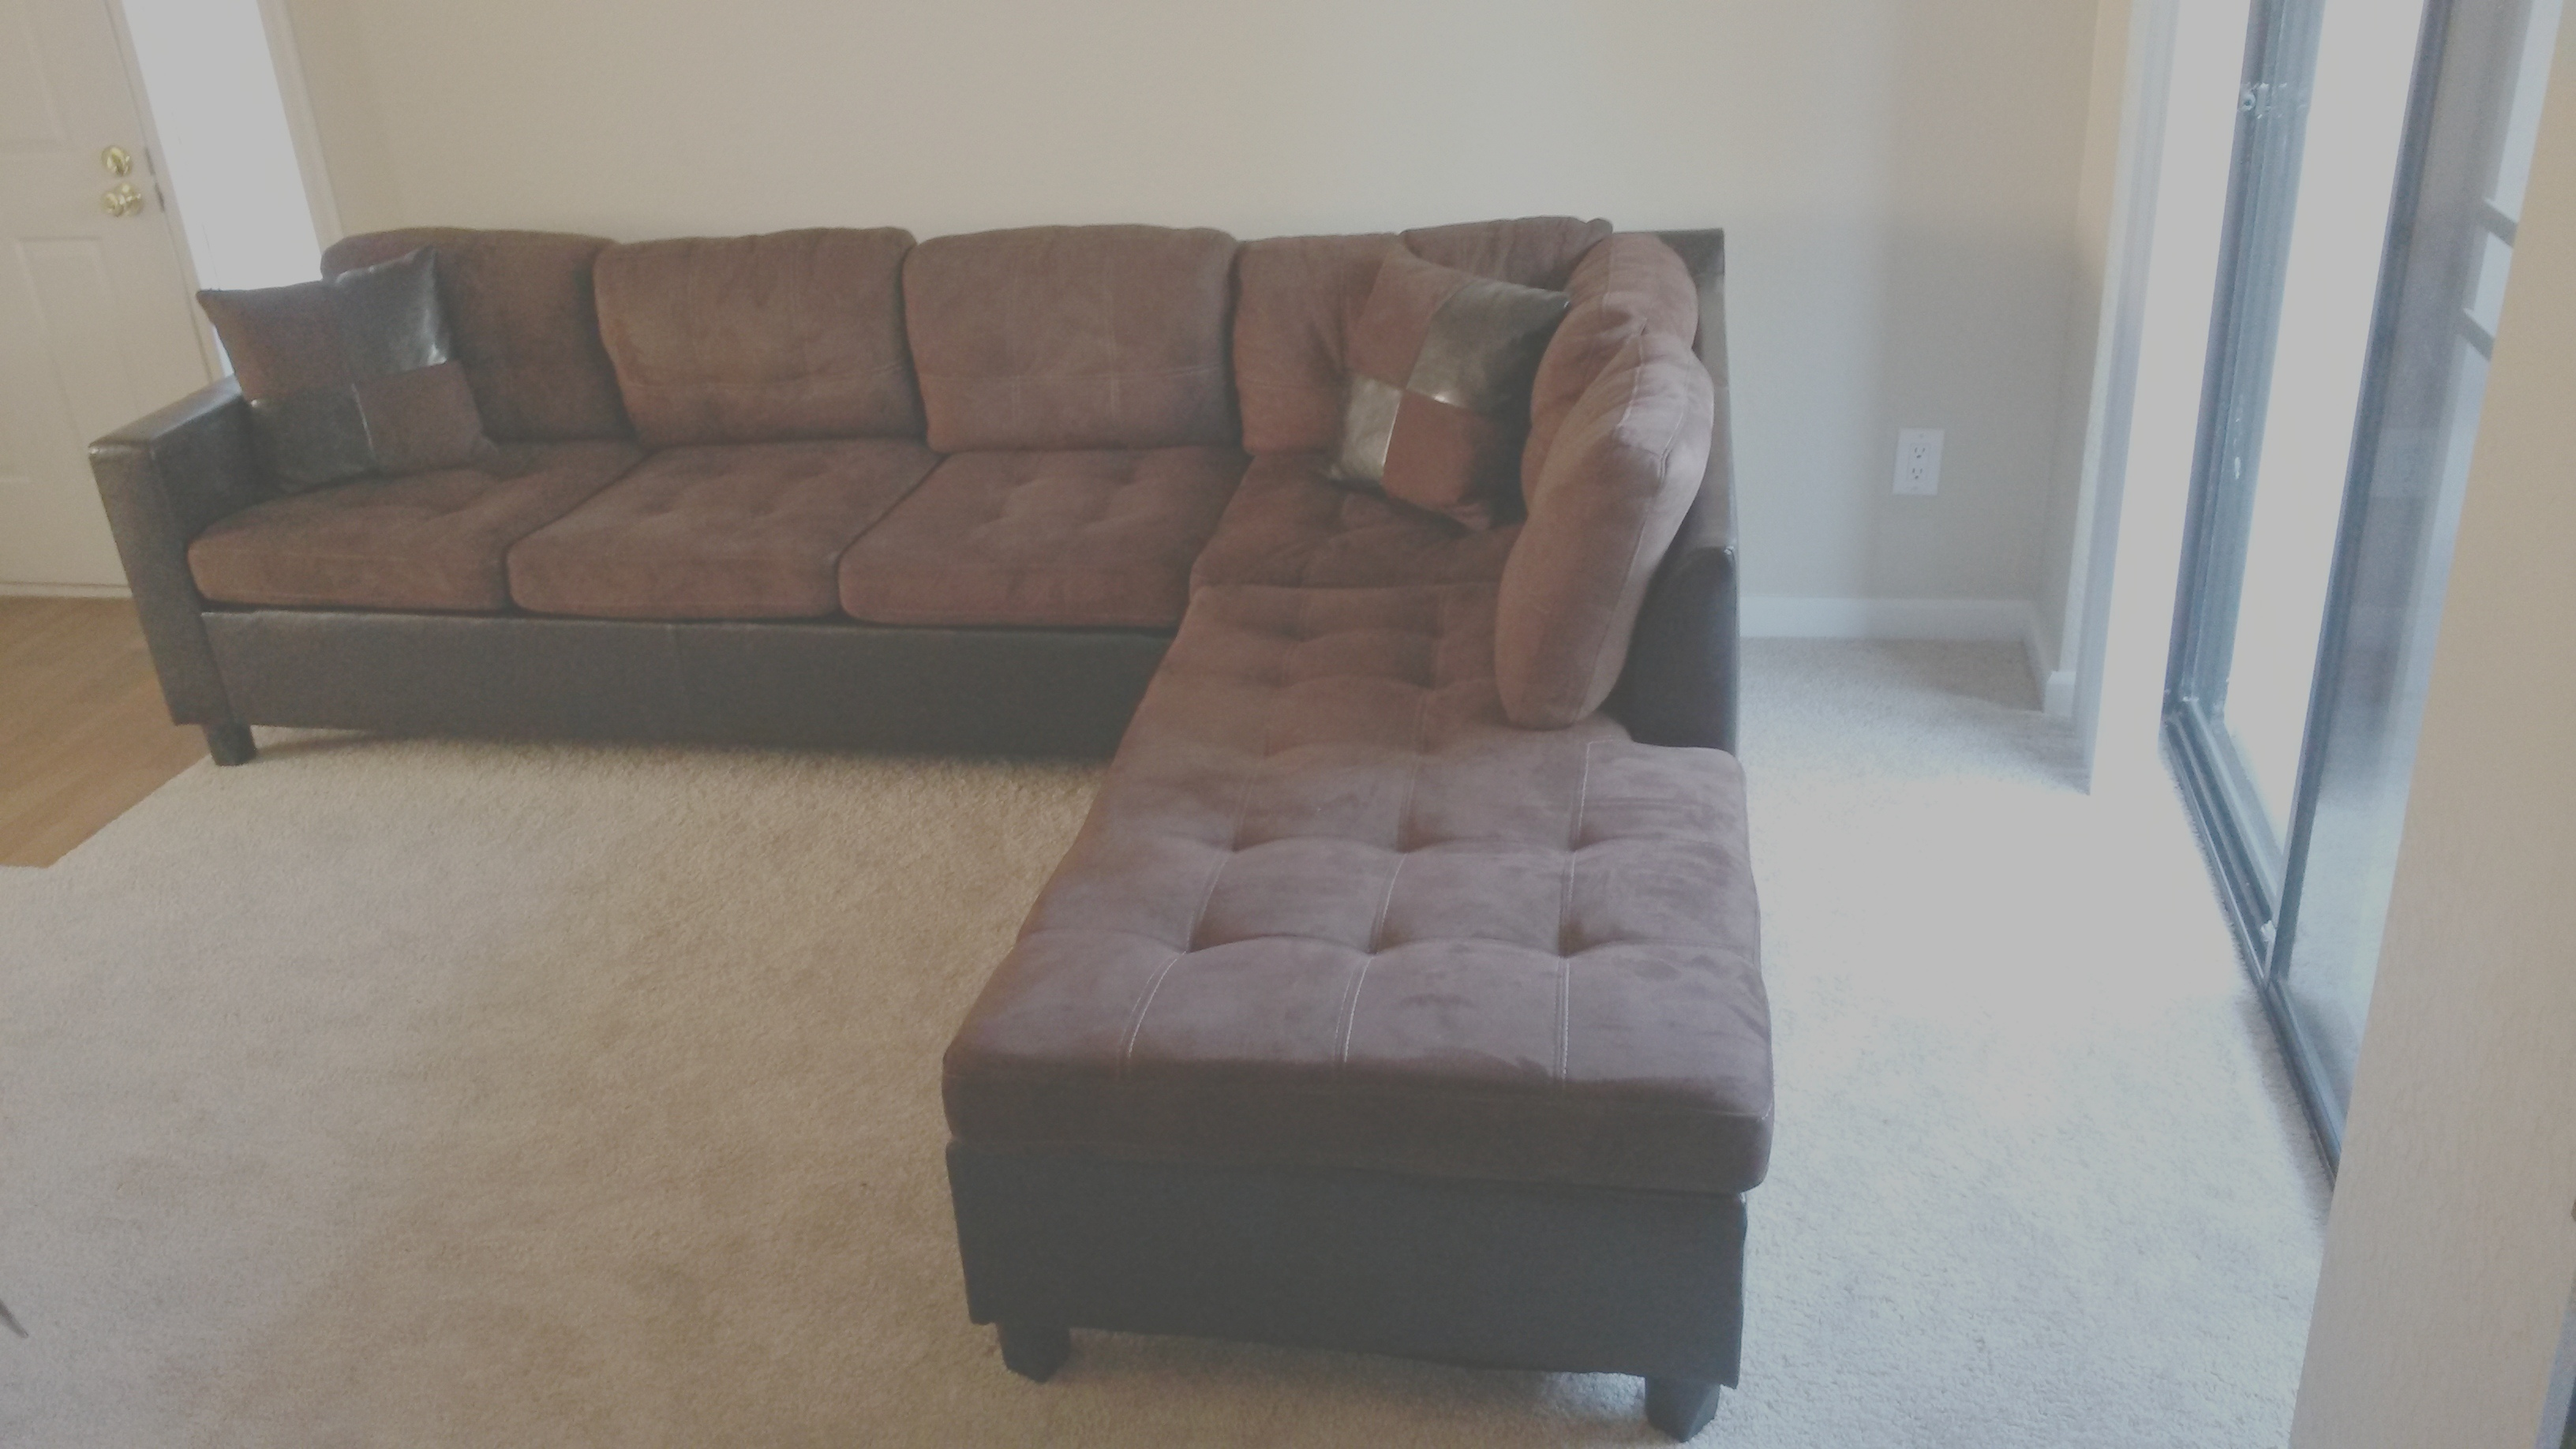 2 Bed Room Apt Free Furniture 1000 Cash Connecting